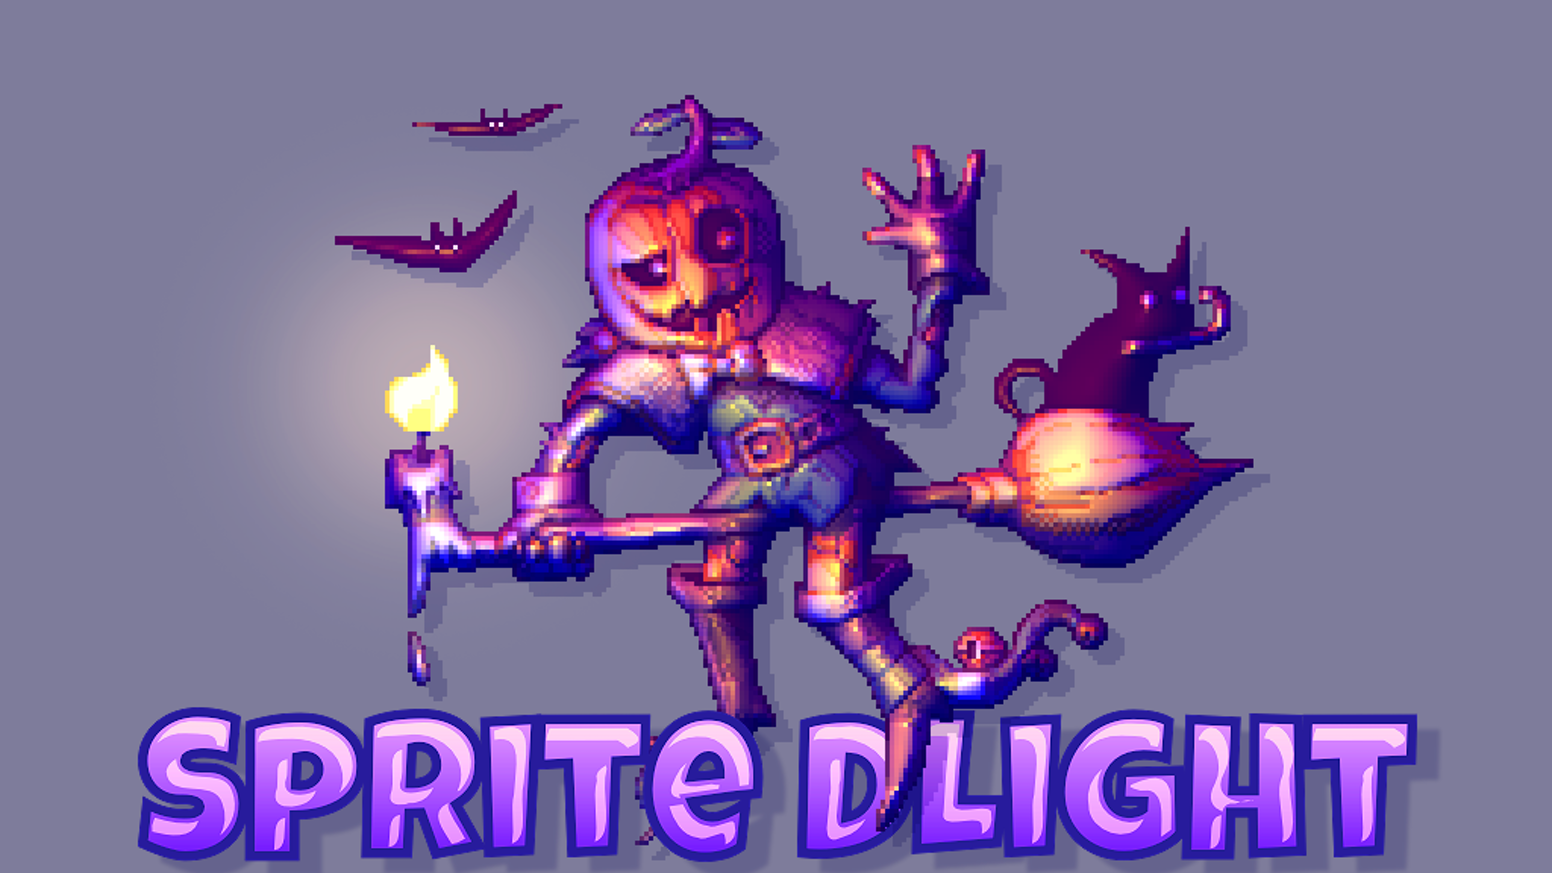 A tool providing a new generation of bulky one-click normal maps from 2D sprites like pixel art for dynamic lighting effects in games.